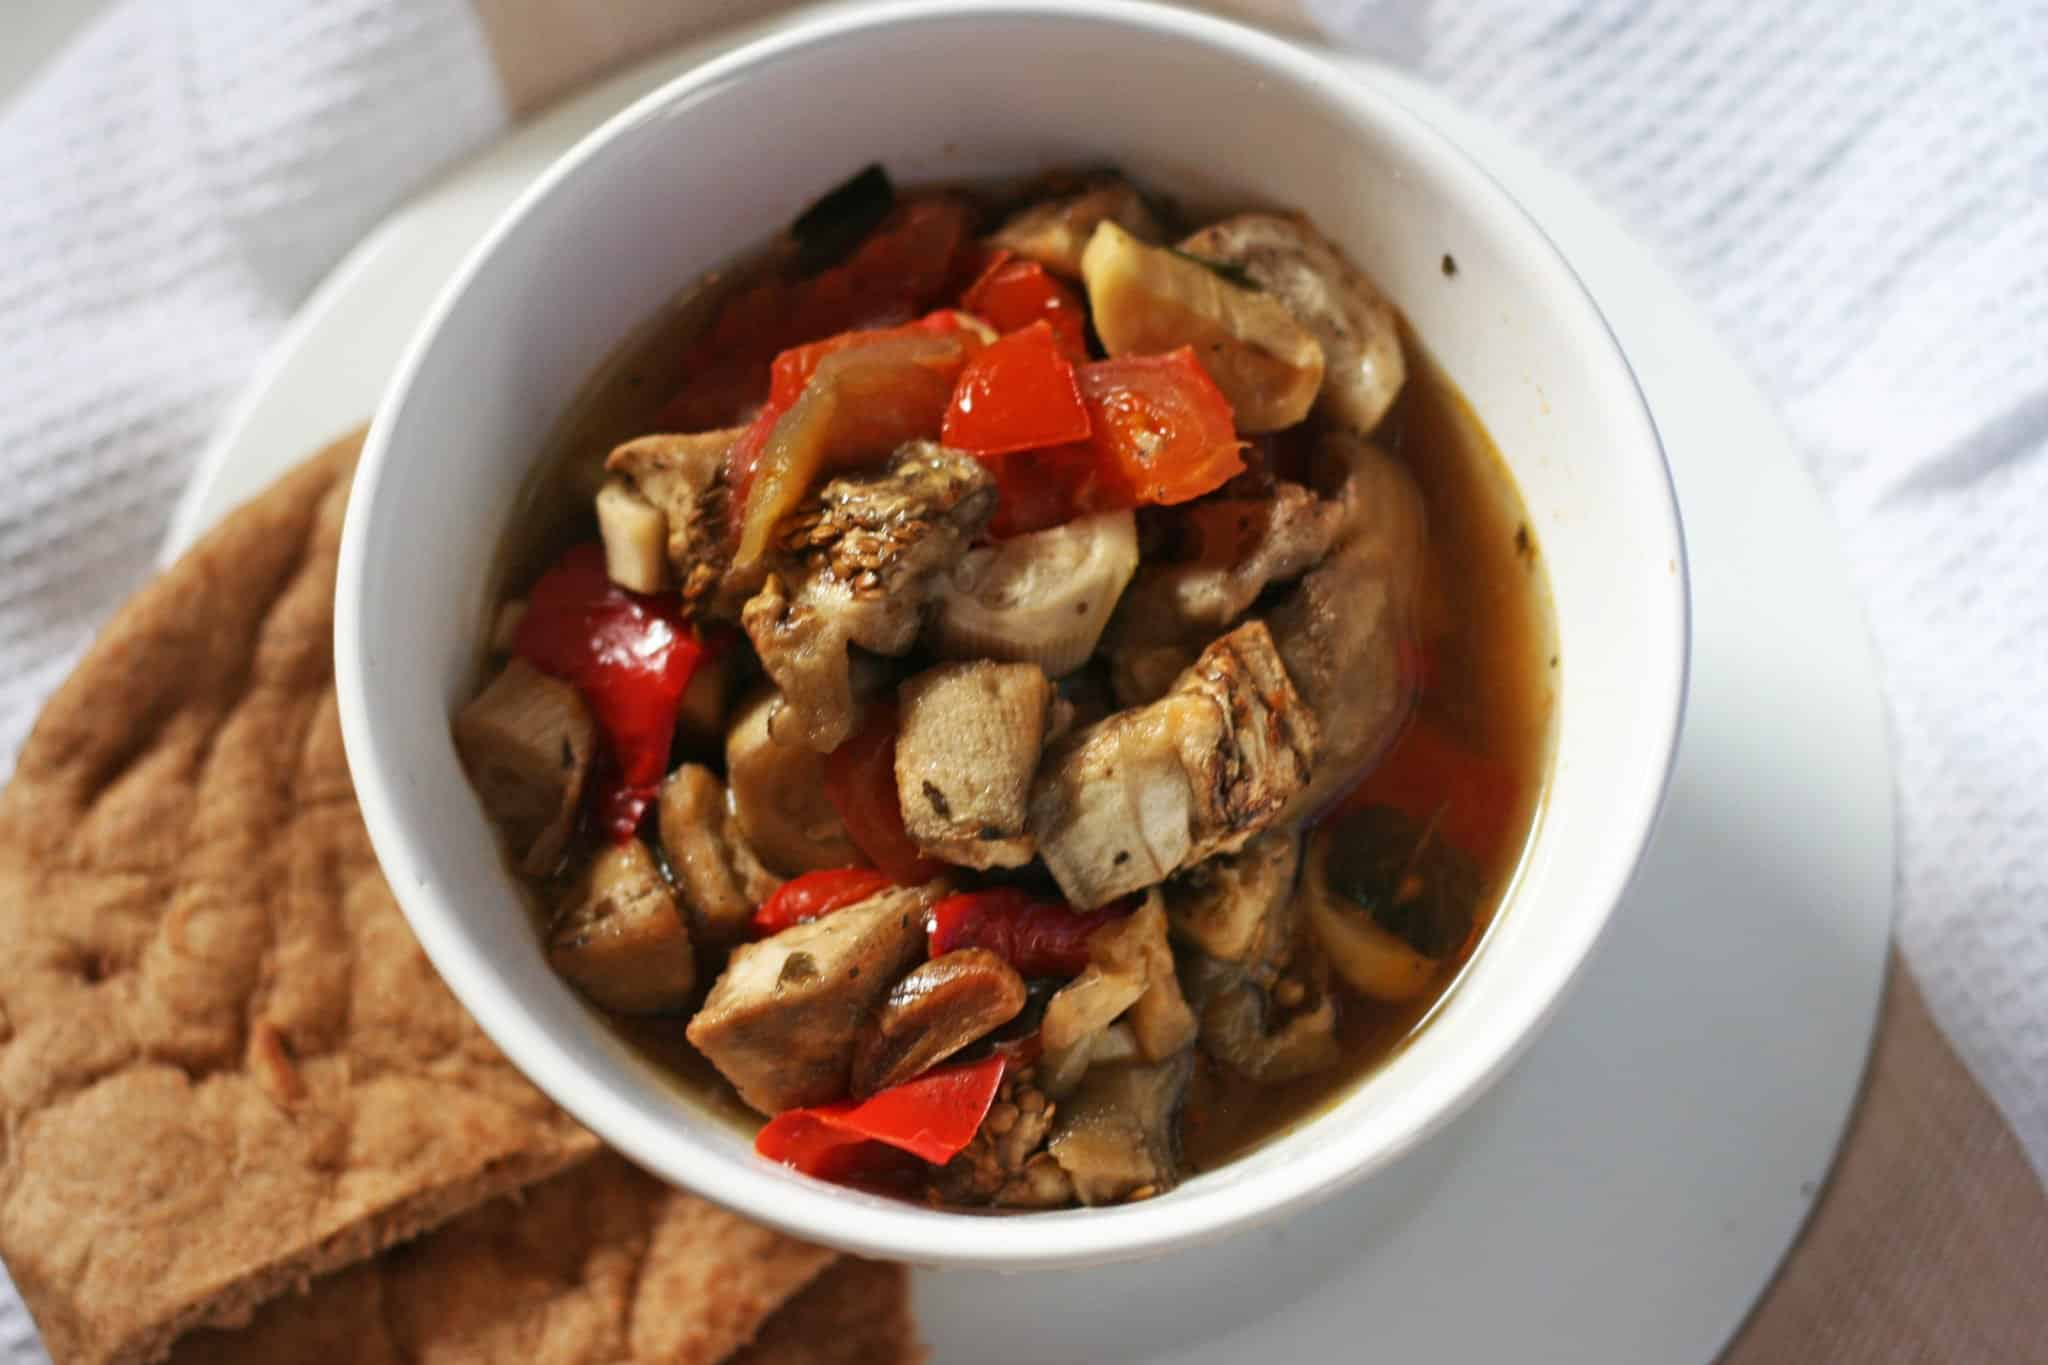 Tender eggplant and peppers slow cooked and served in a white bowl with warm pita bread in a side plate